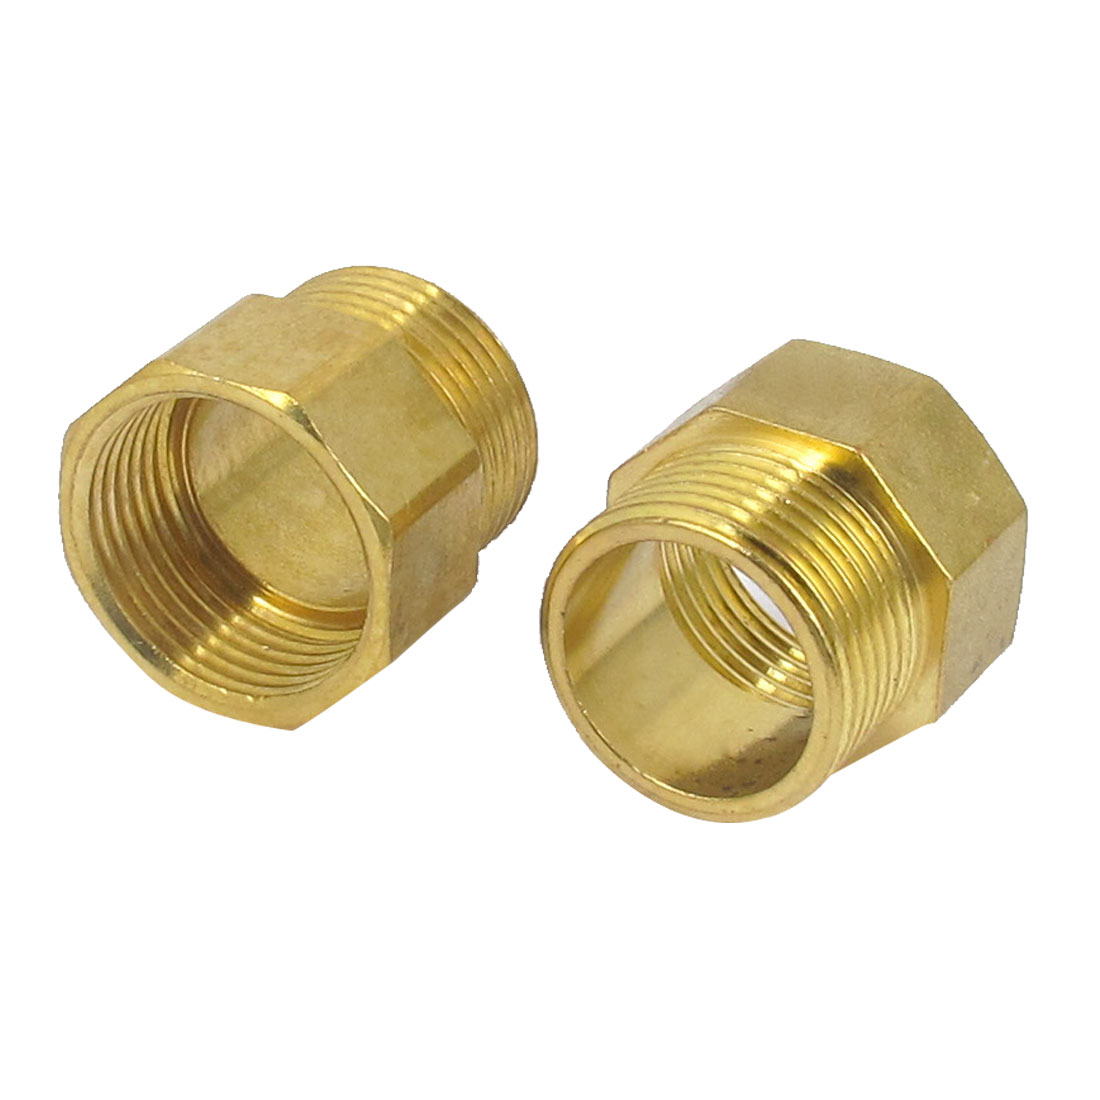 2pcs 1BSP to 1BSP M/F Threaded Brass Air Pipe Fittings Reducer Bushing Adapter Gold Tone